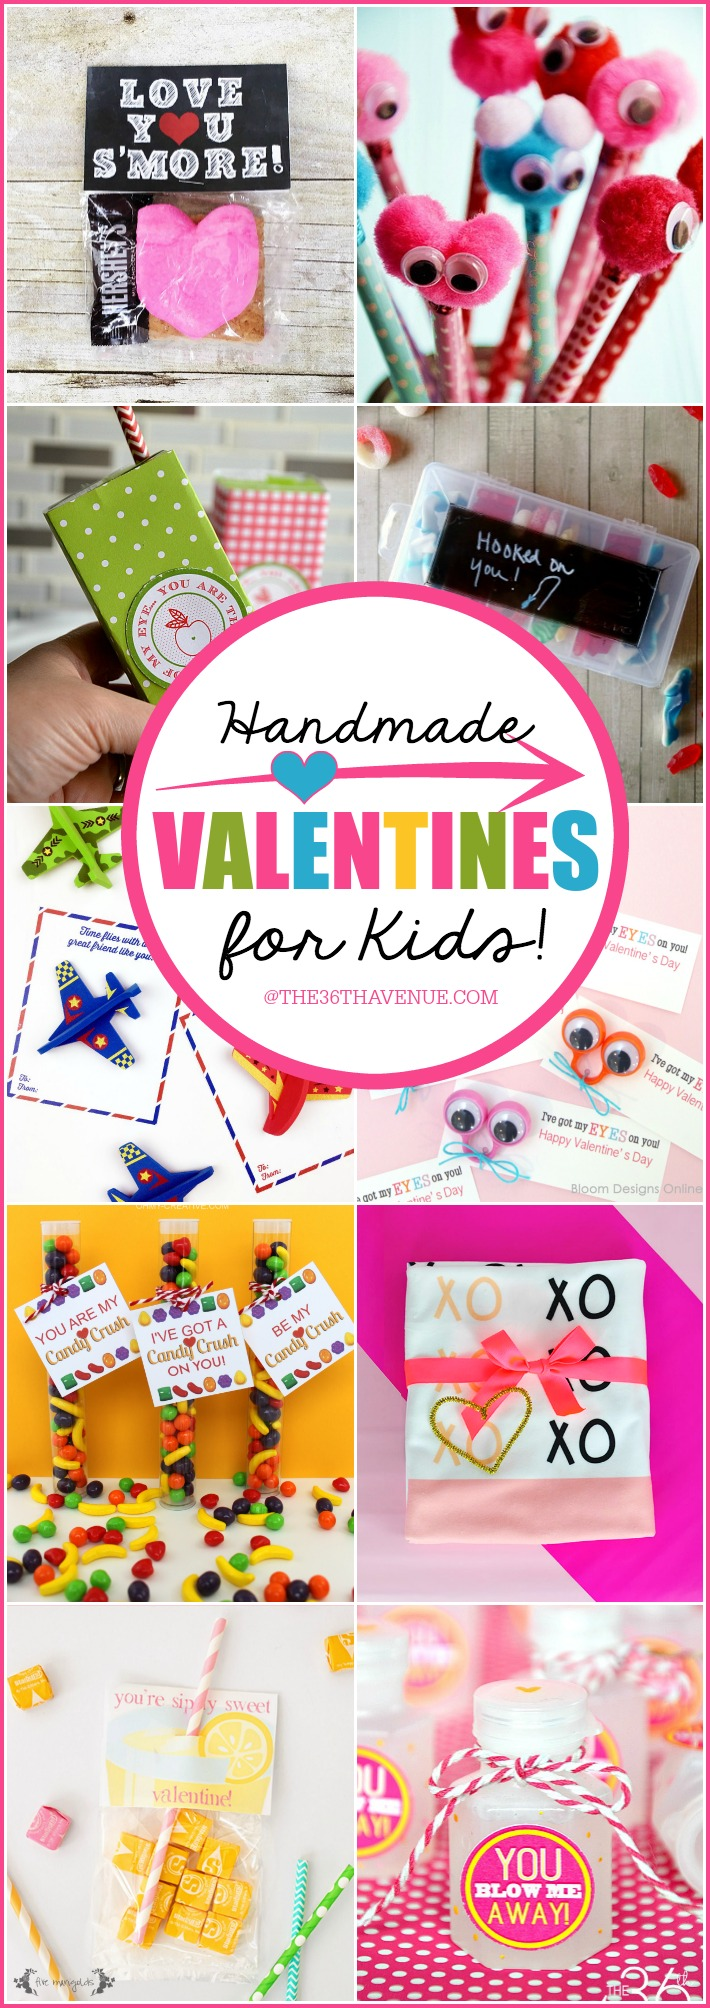 Handmade Valentines for Kids the36thavenue.com